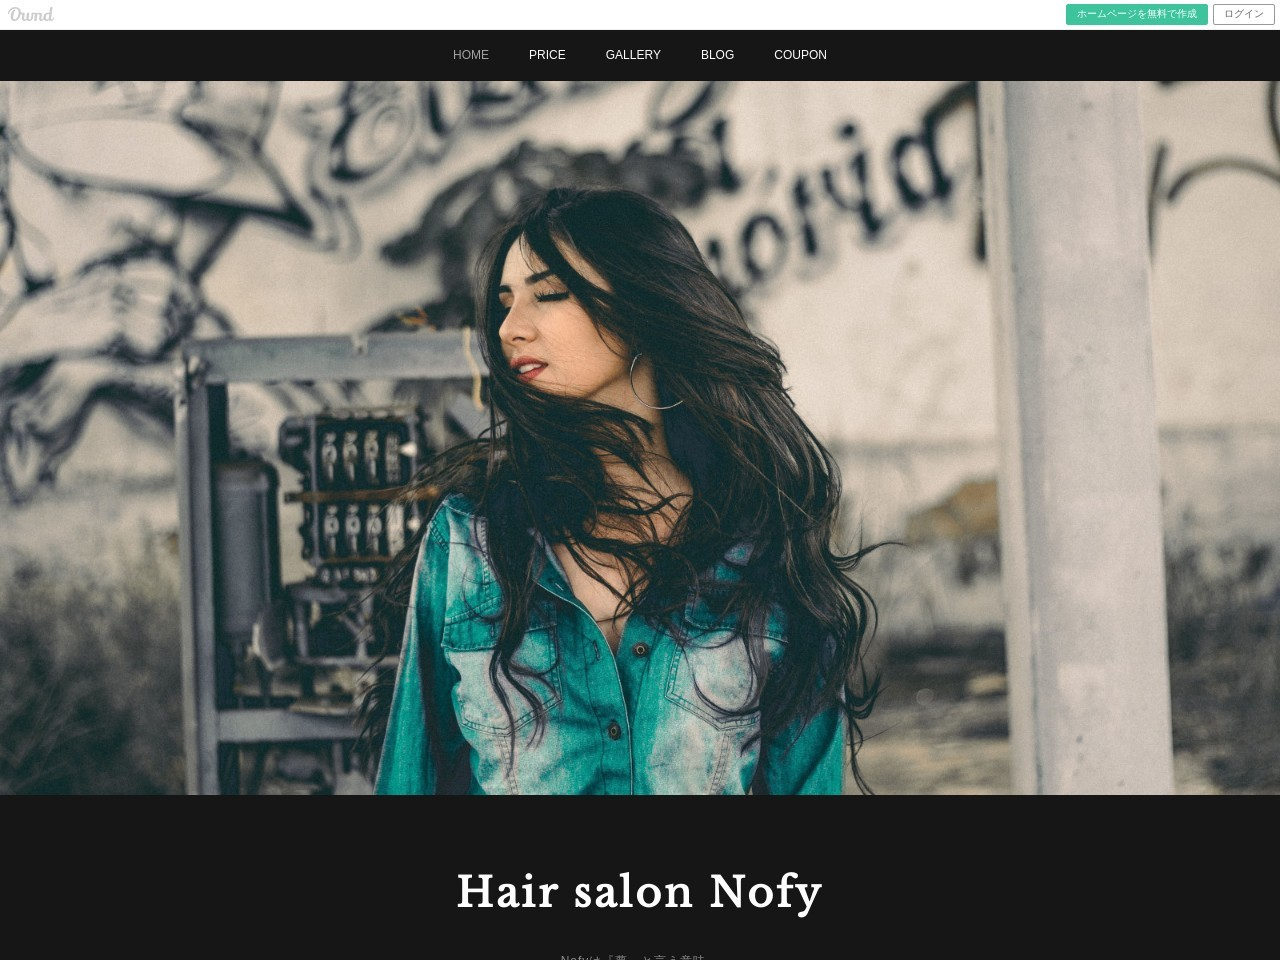 Hair Salon Nofy